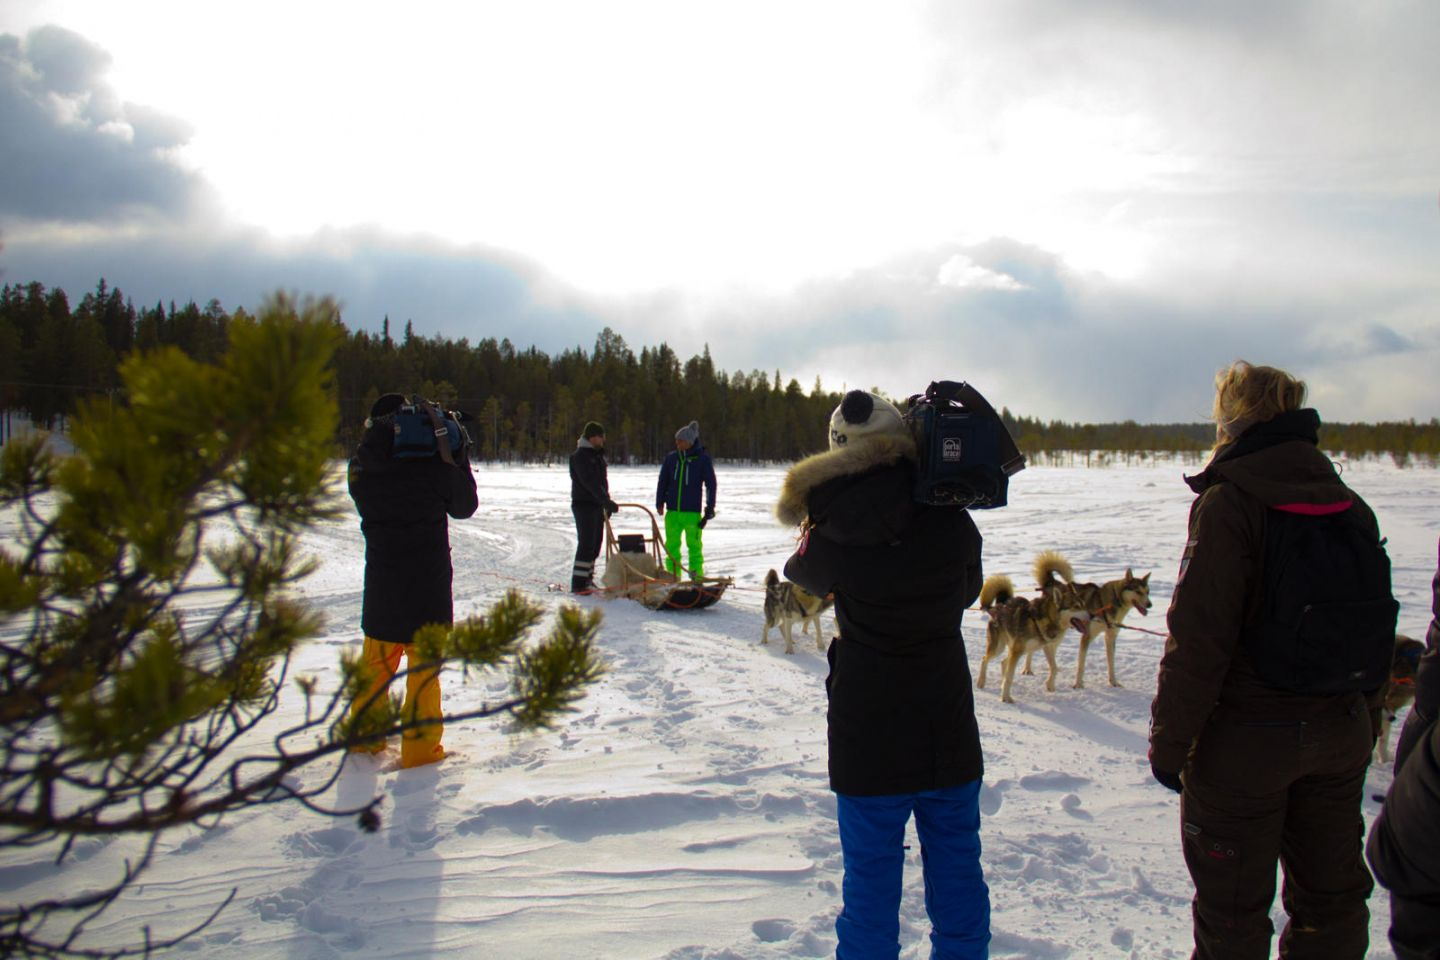 Filming husky ride in Lapland for French travel tv show